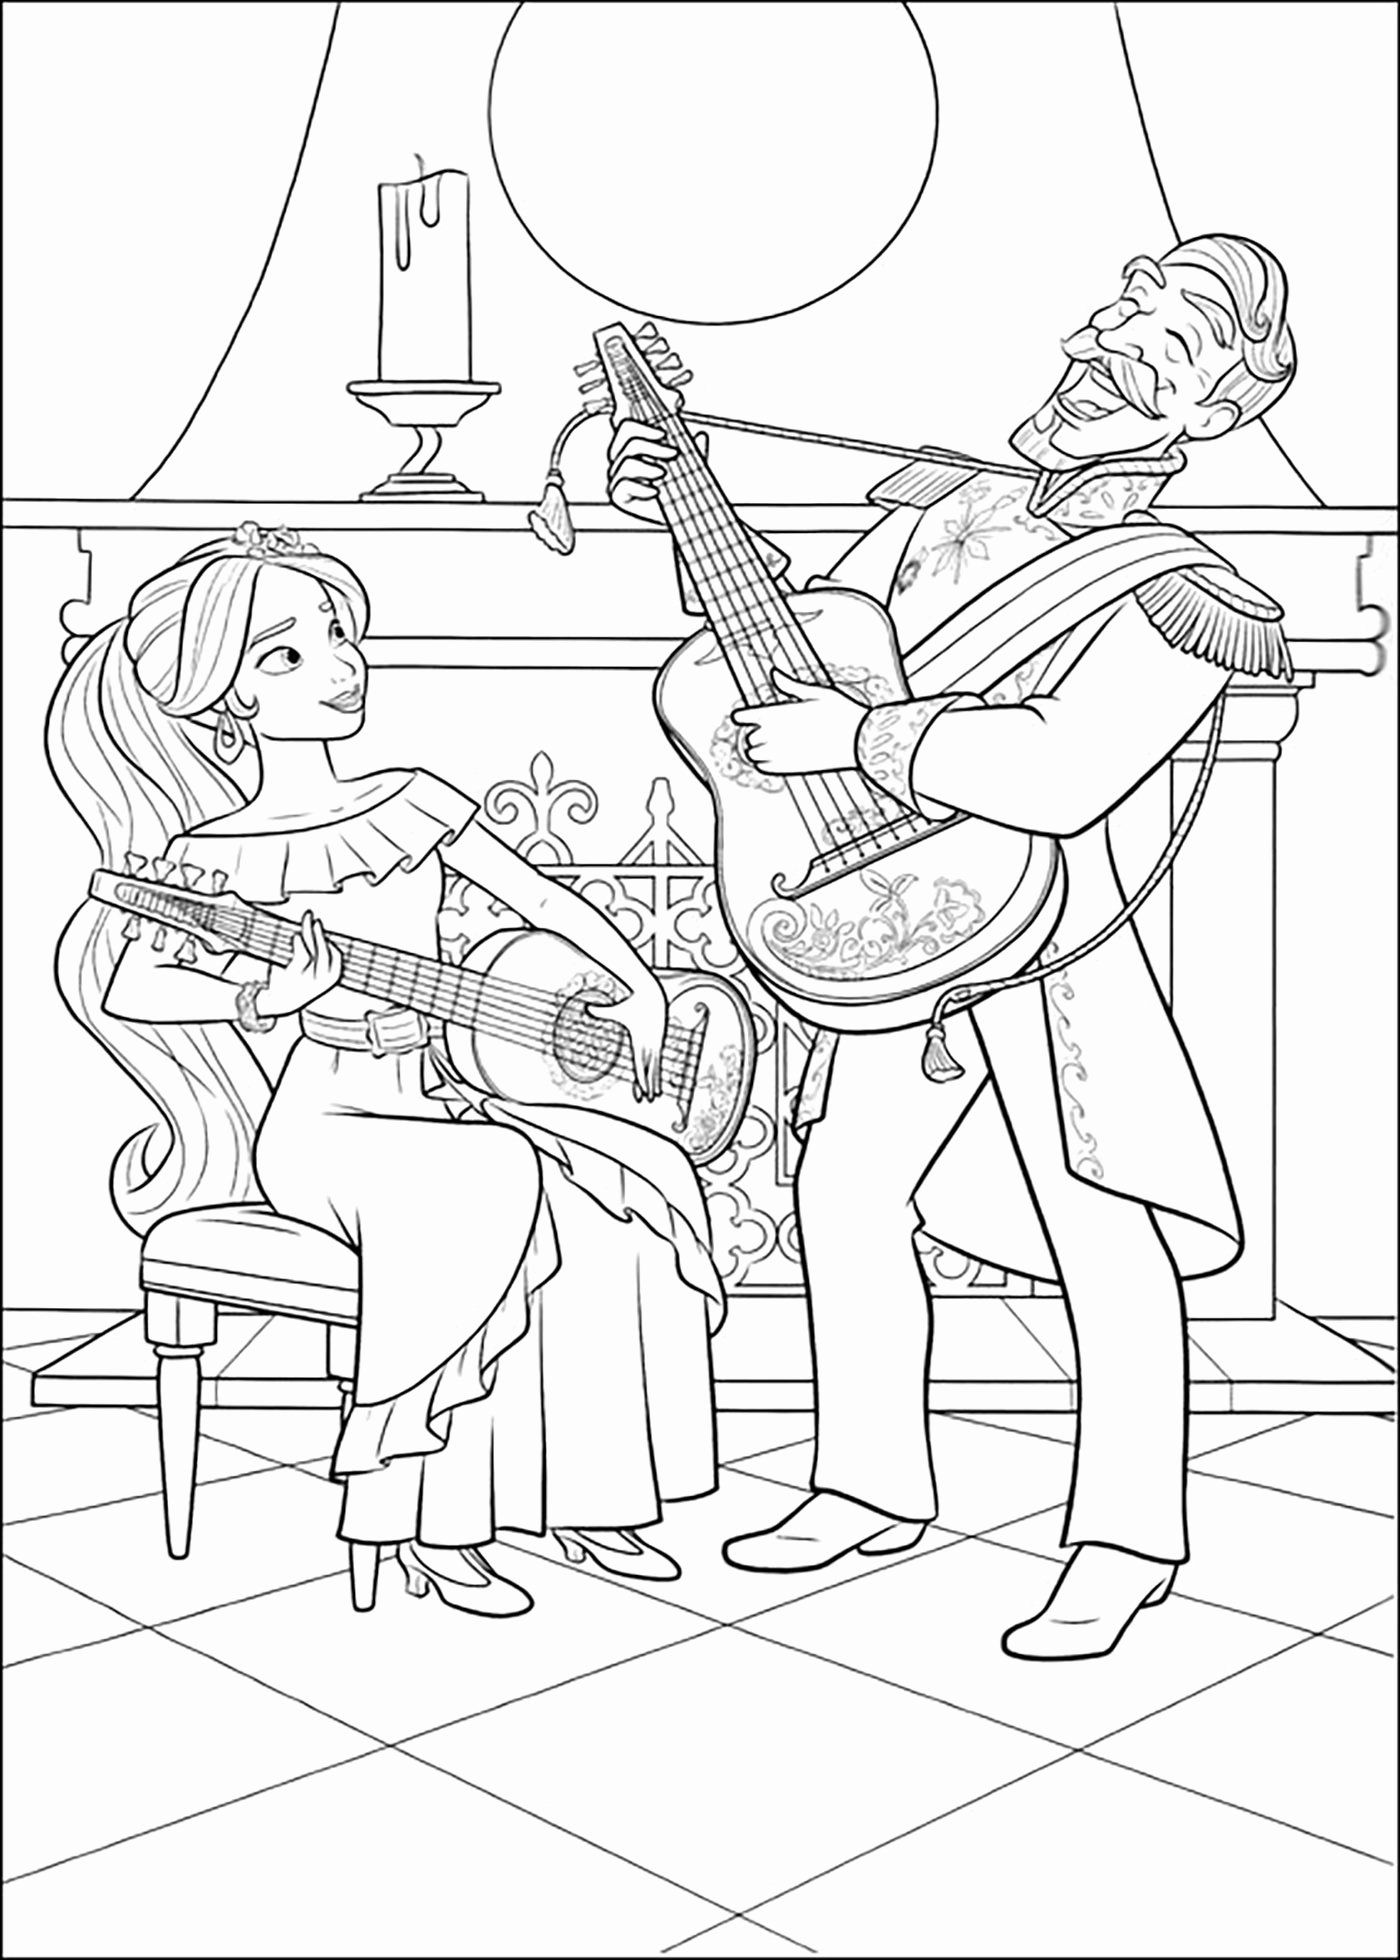 Elena Of Avalor Coloring Book New Elena Avalor To For Free Elena Avalor Kids Coloring Pages Bear Coloring Pages Nemo Coloring Pages Coloring Books [ 1960 x 1400 Pixel ]